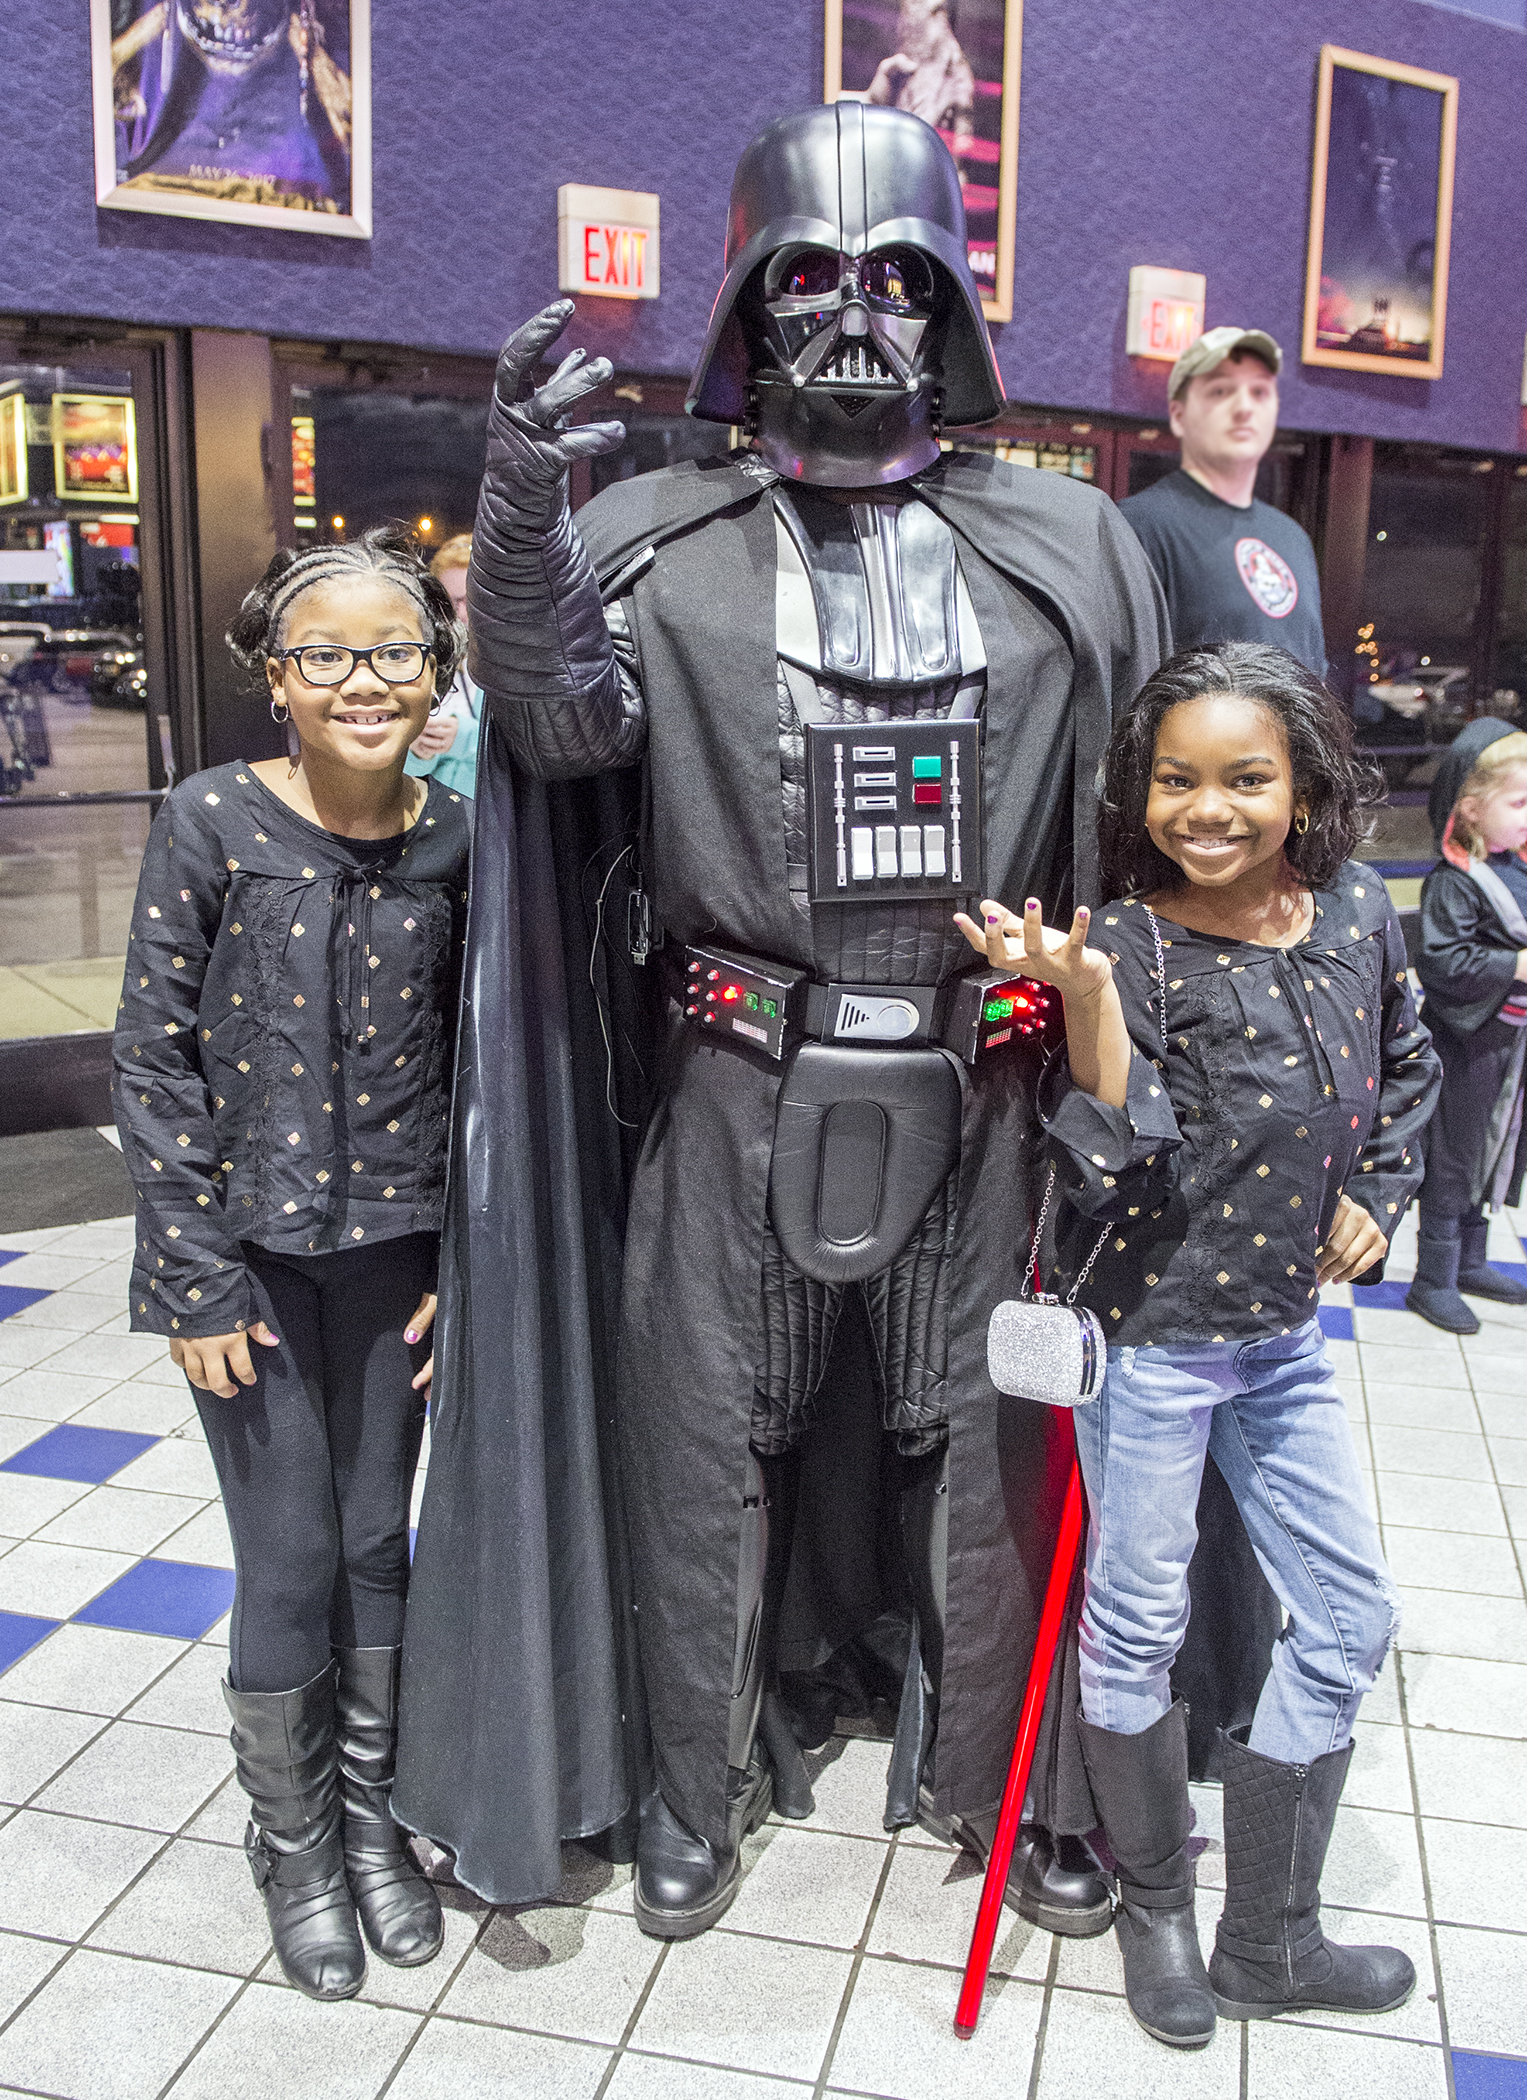 The First Daughters meet Darth Vader